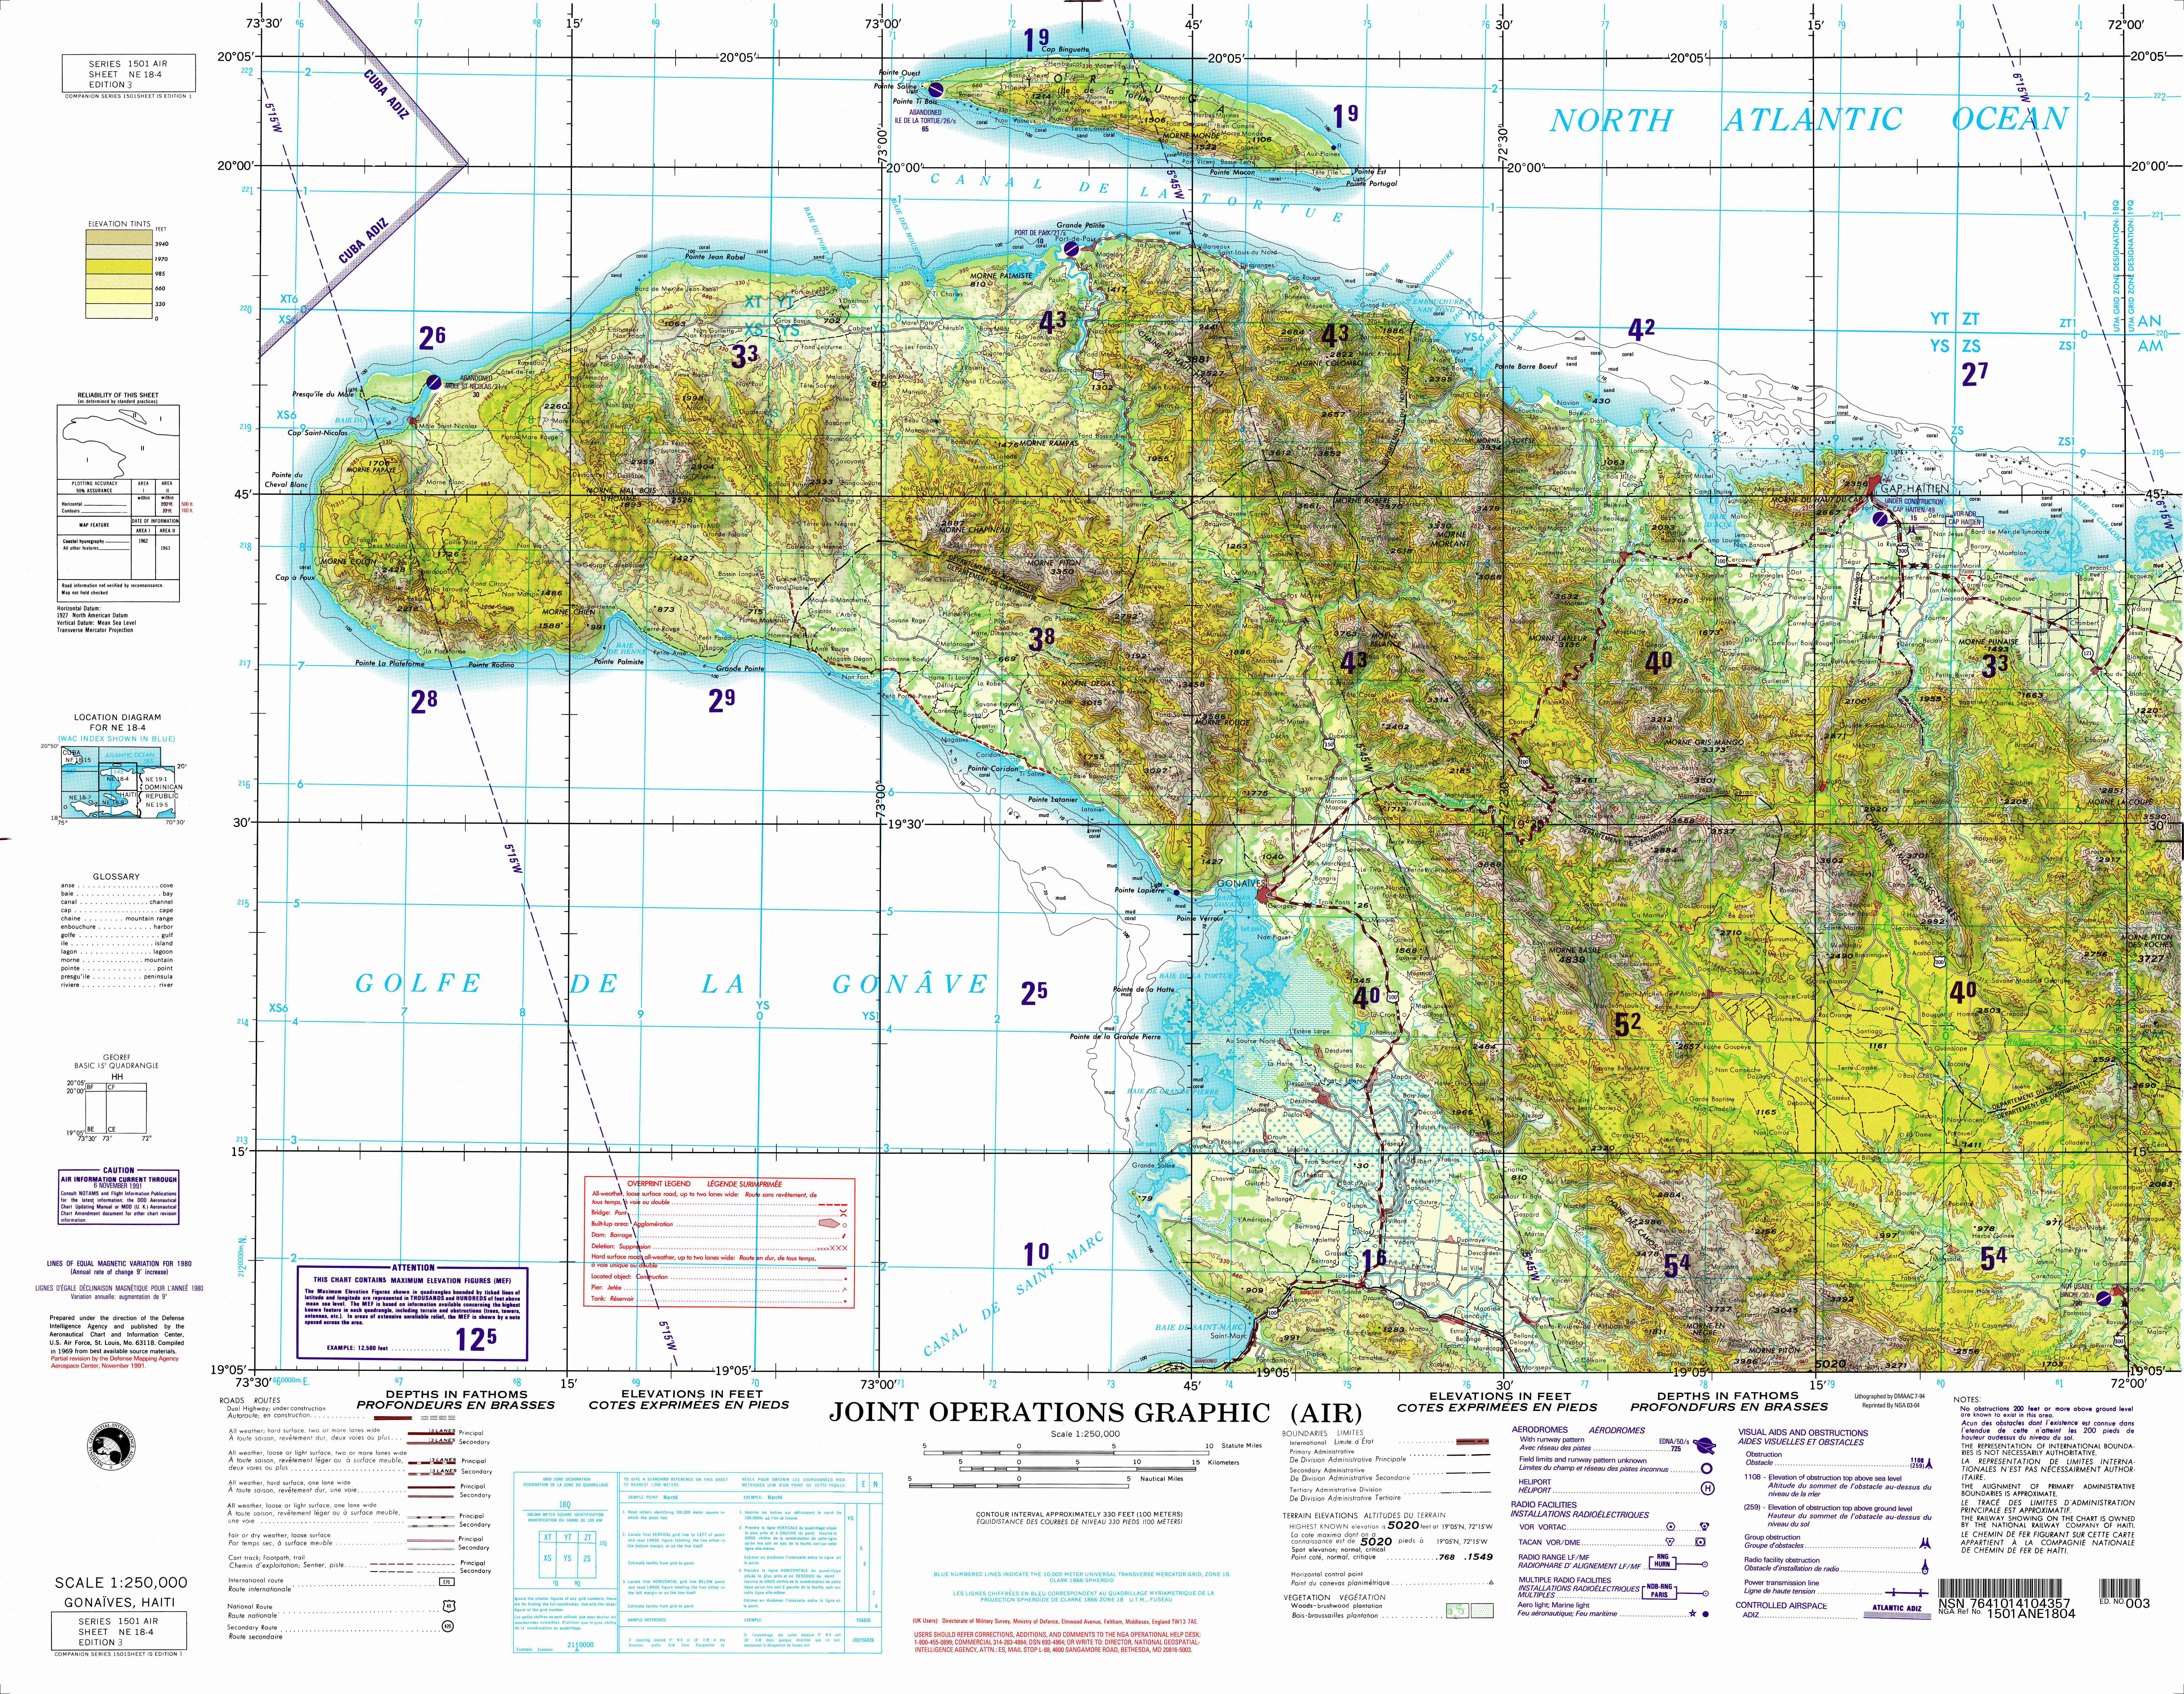 Haiti joint operations graphic perry castaeda map collection ut index map 128kb gonaives haiti 1250000 joint operations graphic air not for navigational use national geospatial intelligence agency gumiabroncs Image collections